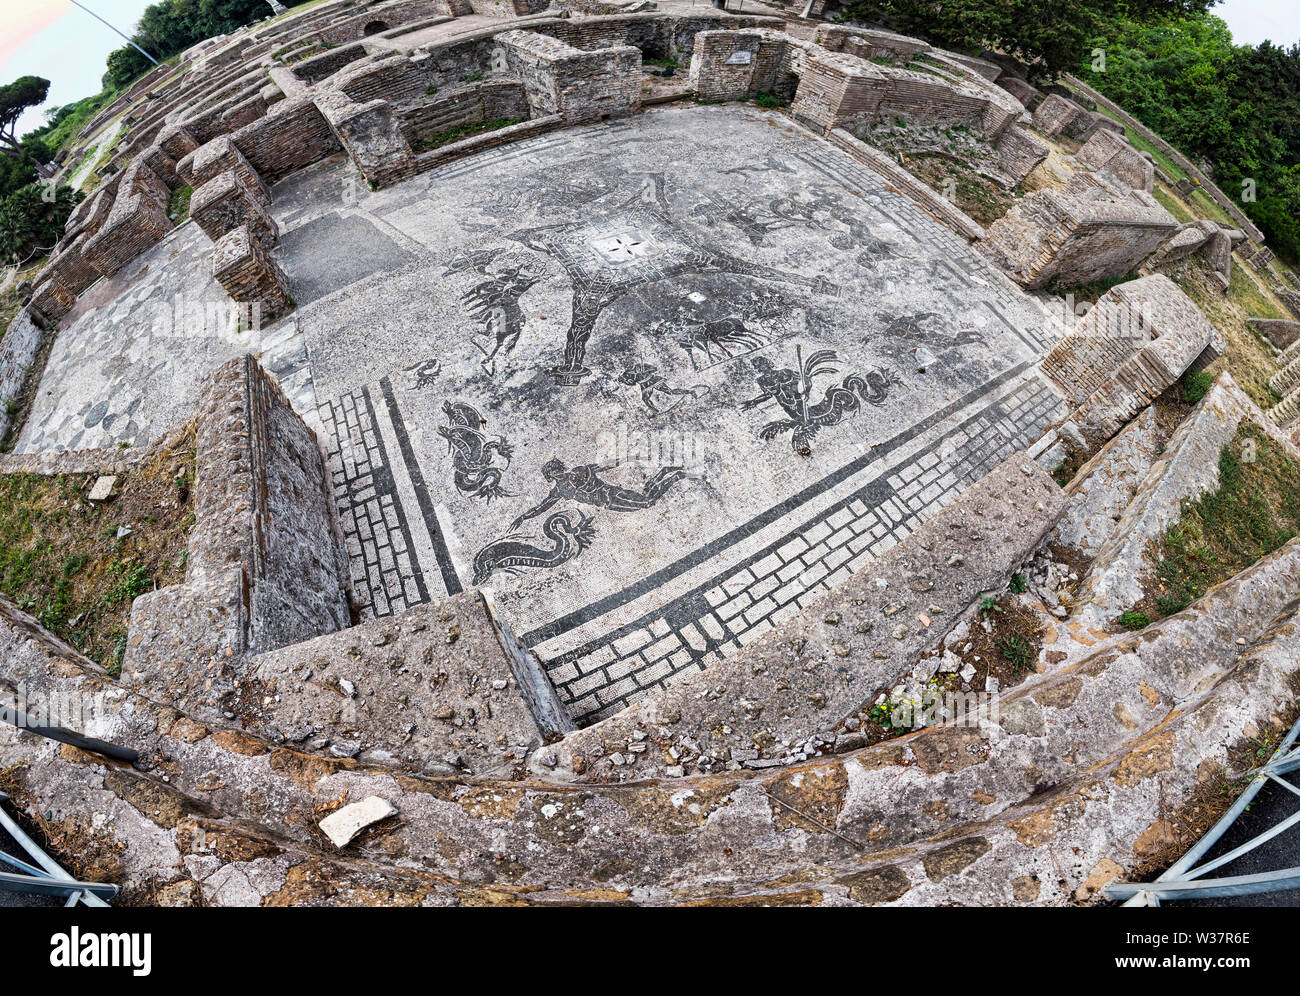 Panoramic view in the Roman empire excavation ruins at Ostia Antica with the beautiful mosaic of  Cisiarii thermal spa - Rome Stock Photo